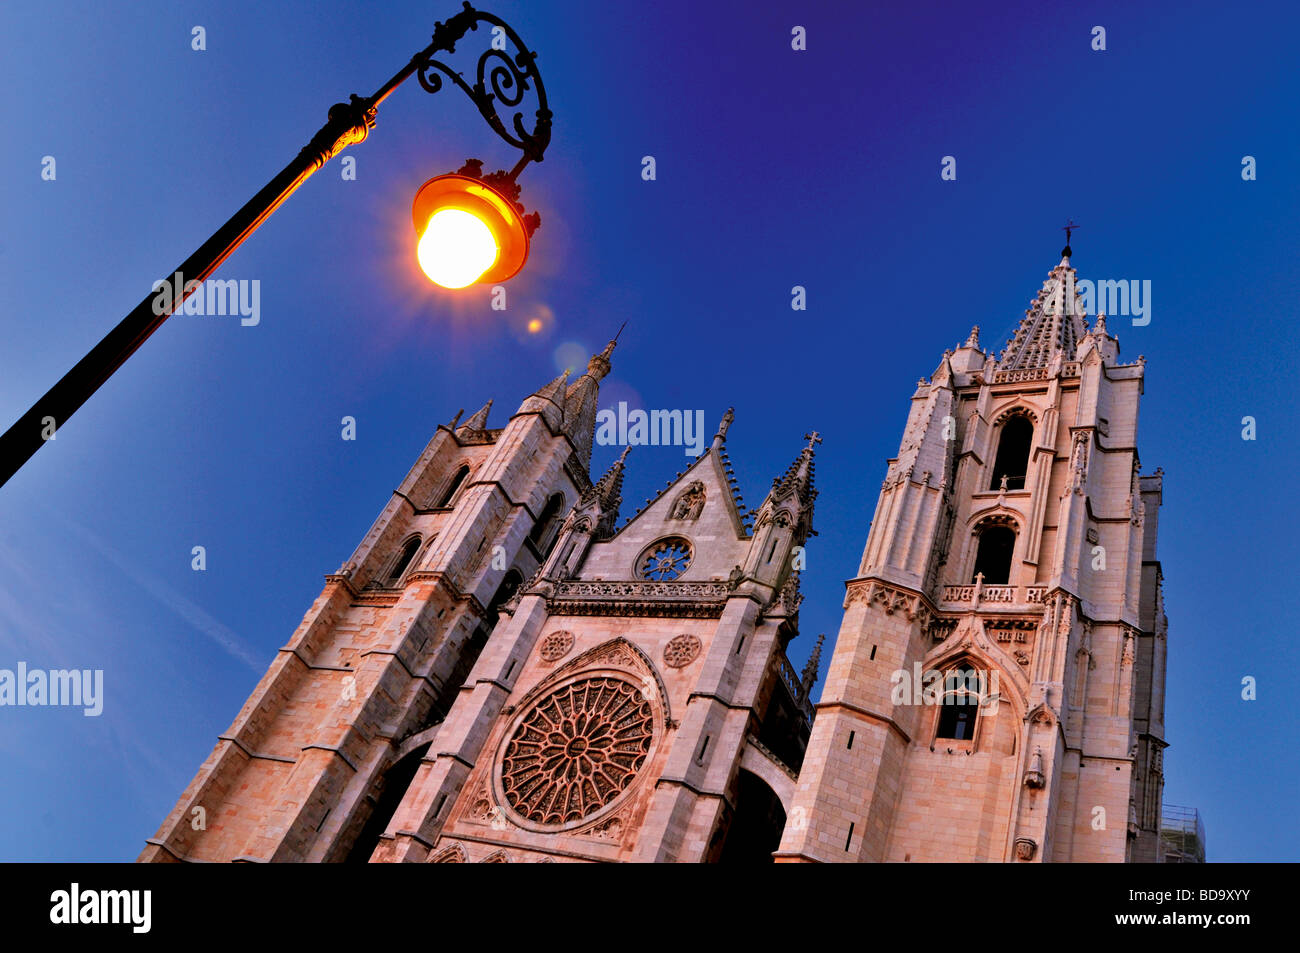 Spain, St. James Way: Nocturnal illumination of the Cathedral of Leon - Stock Image